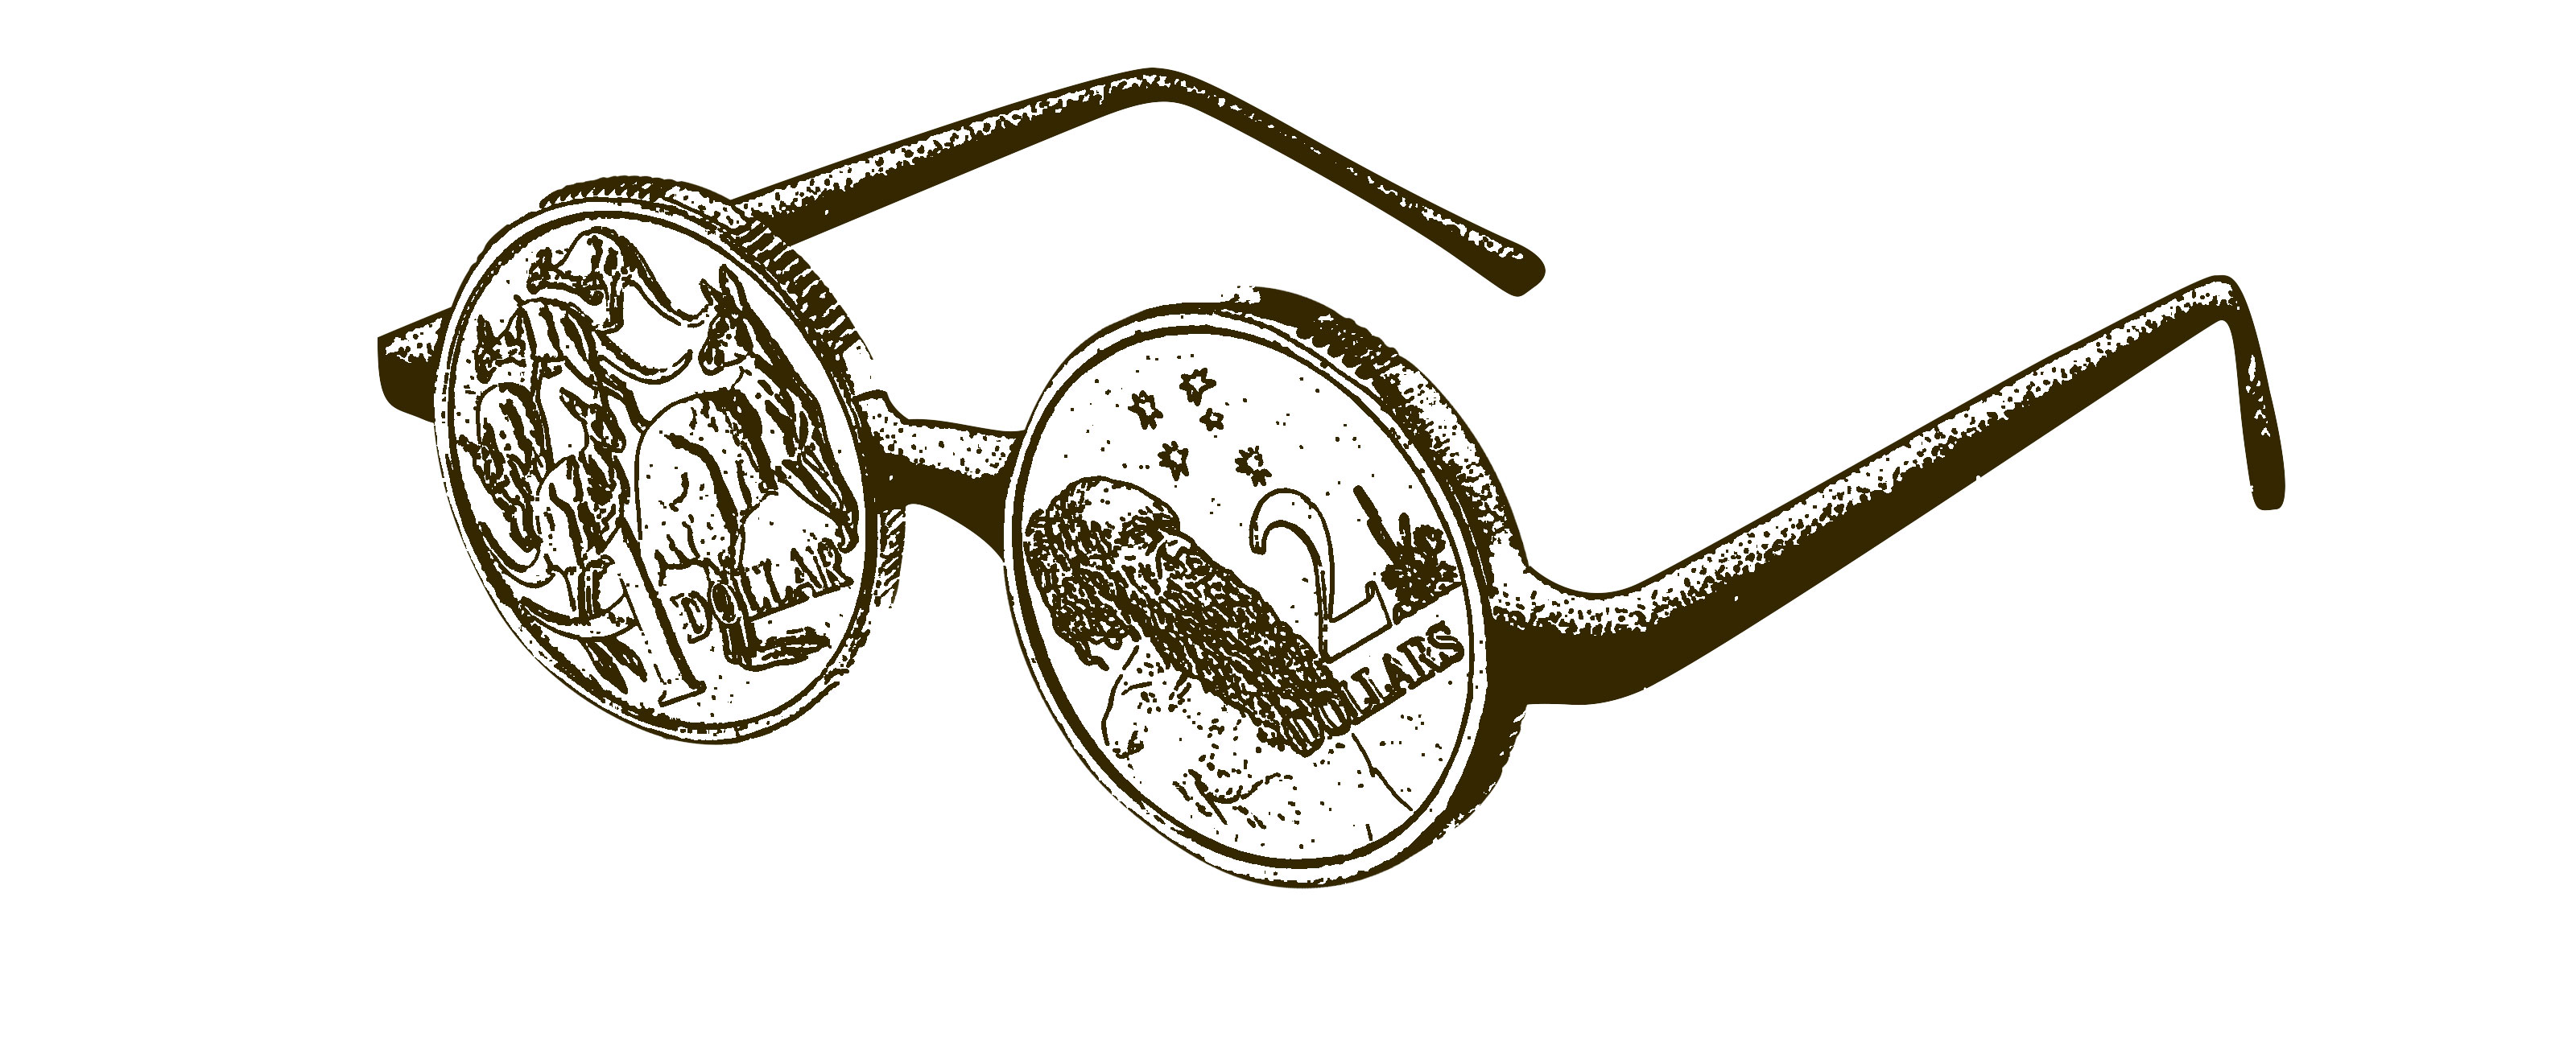 Illustration of a pair of spectacles with coins for lenses